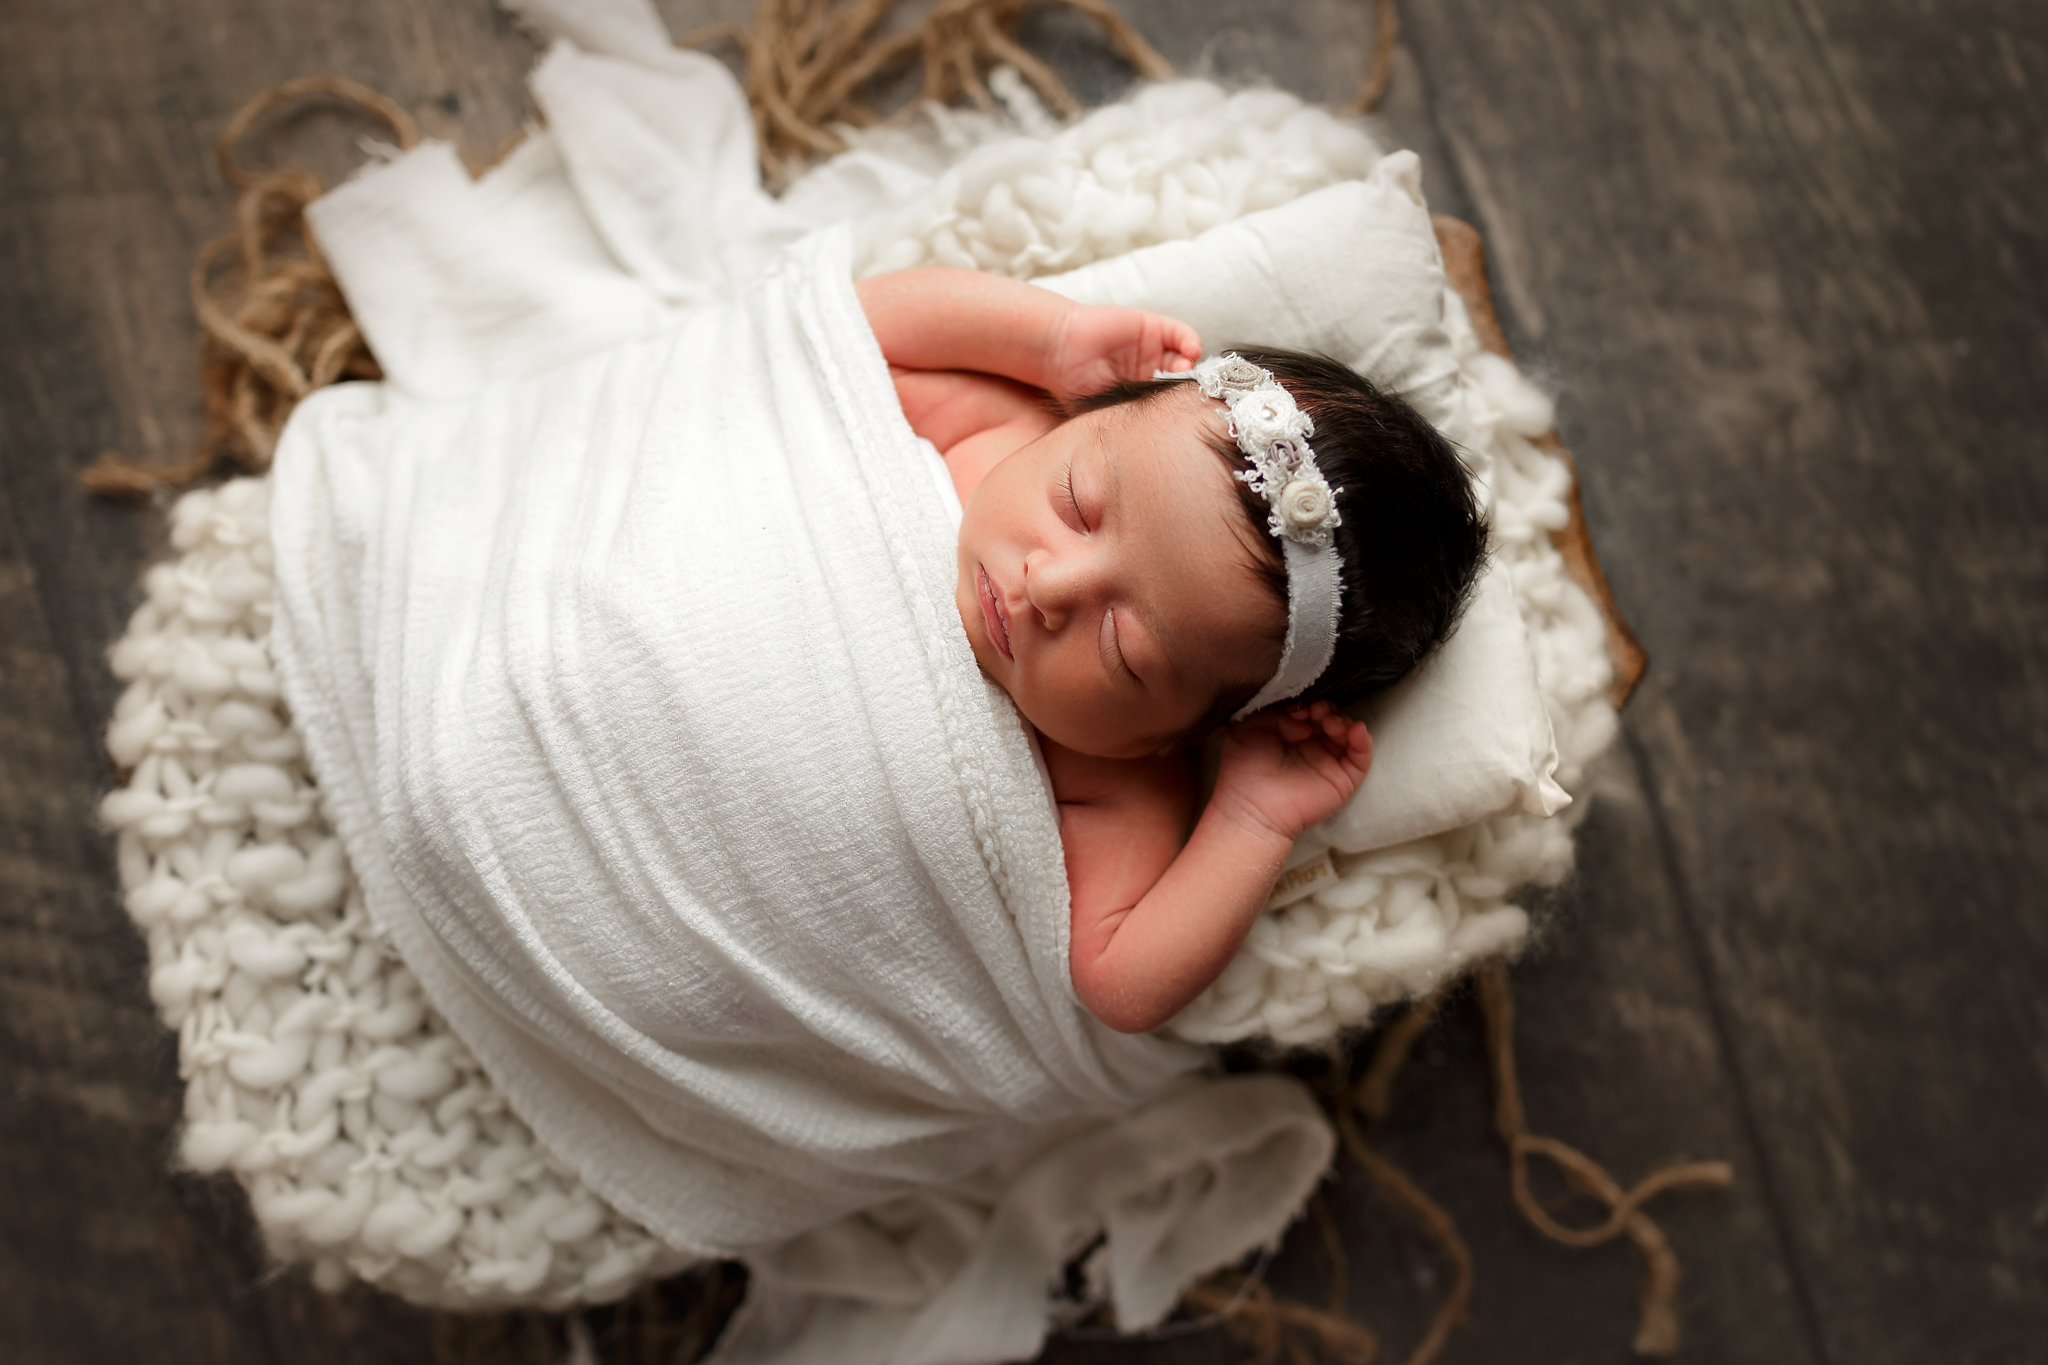 Sophia-Acosta-Newborn-Session-6778.jpg